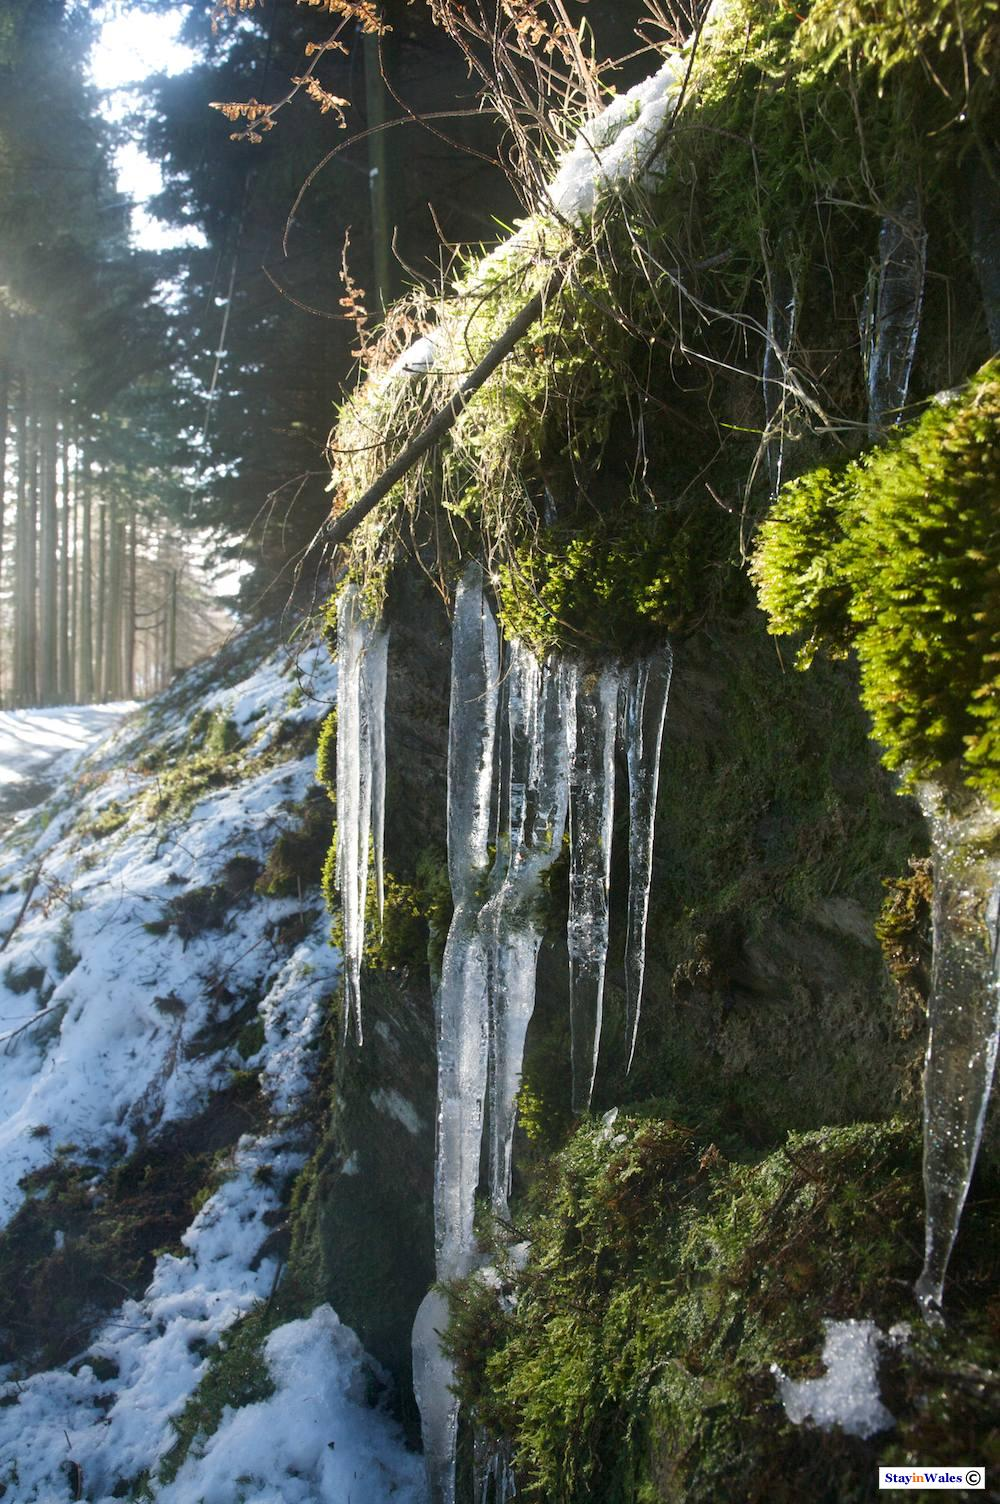 Icicles in the Elan Valley